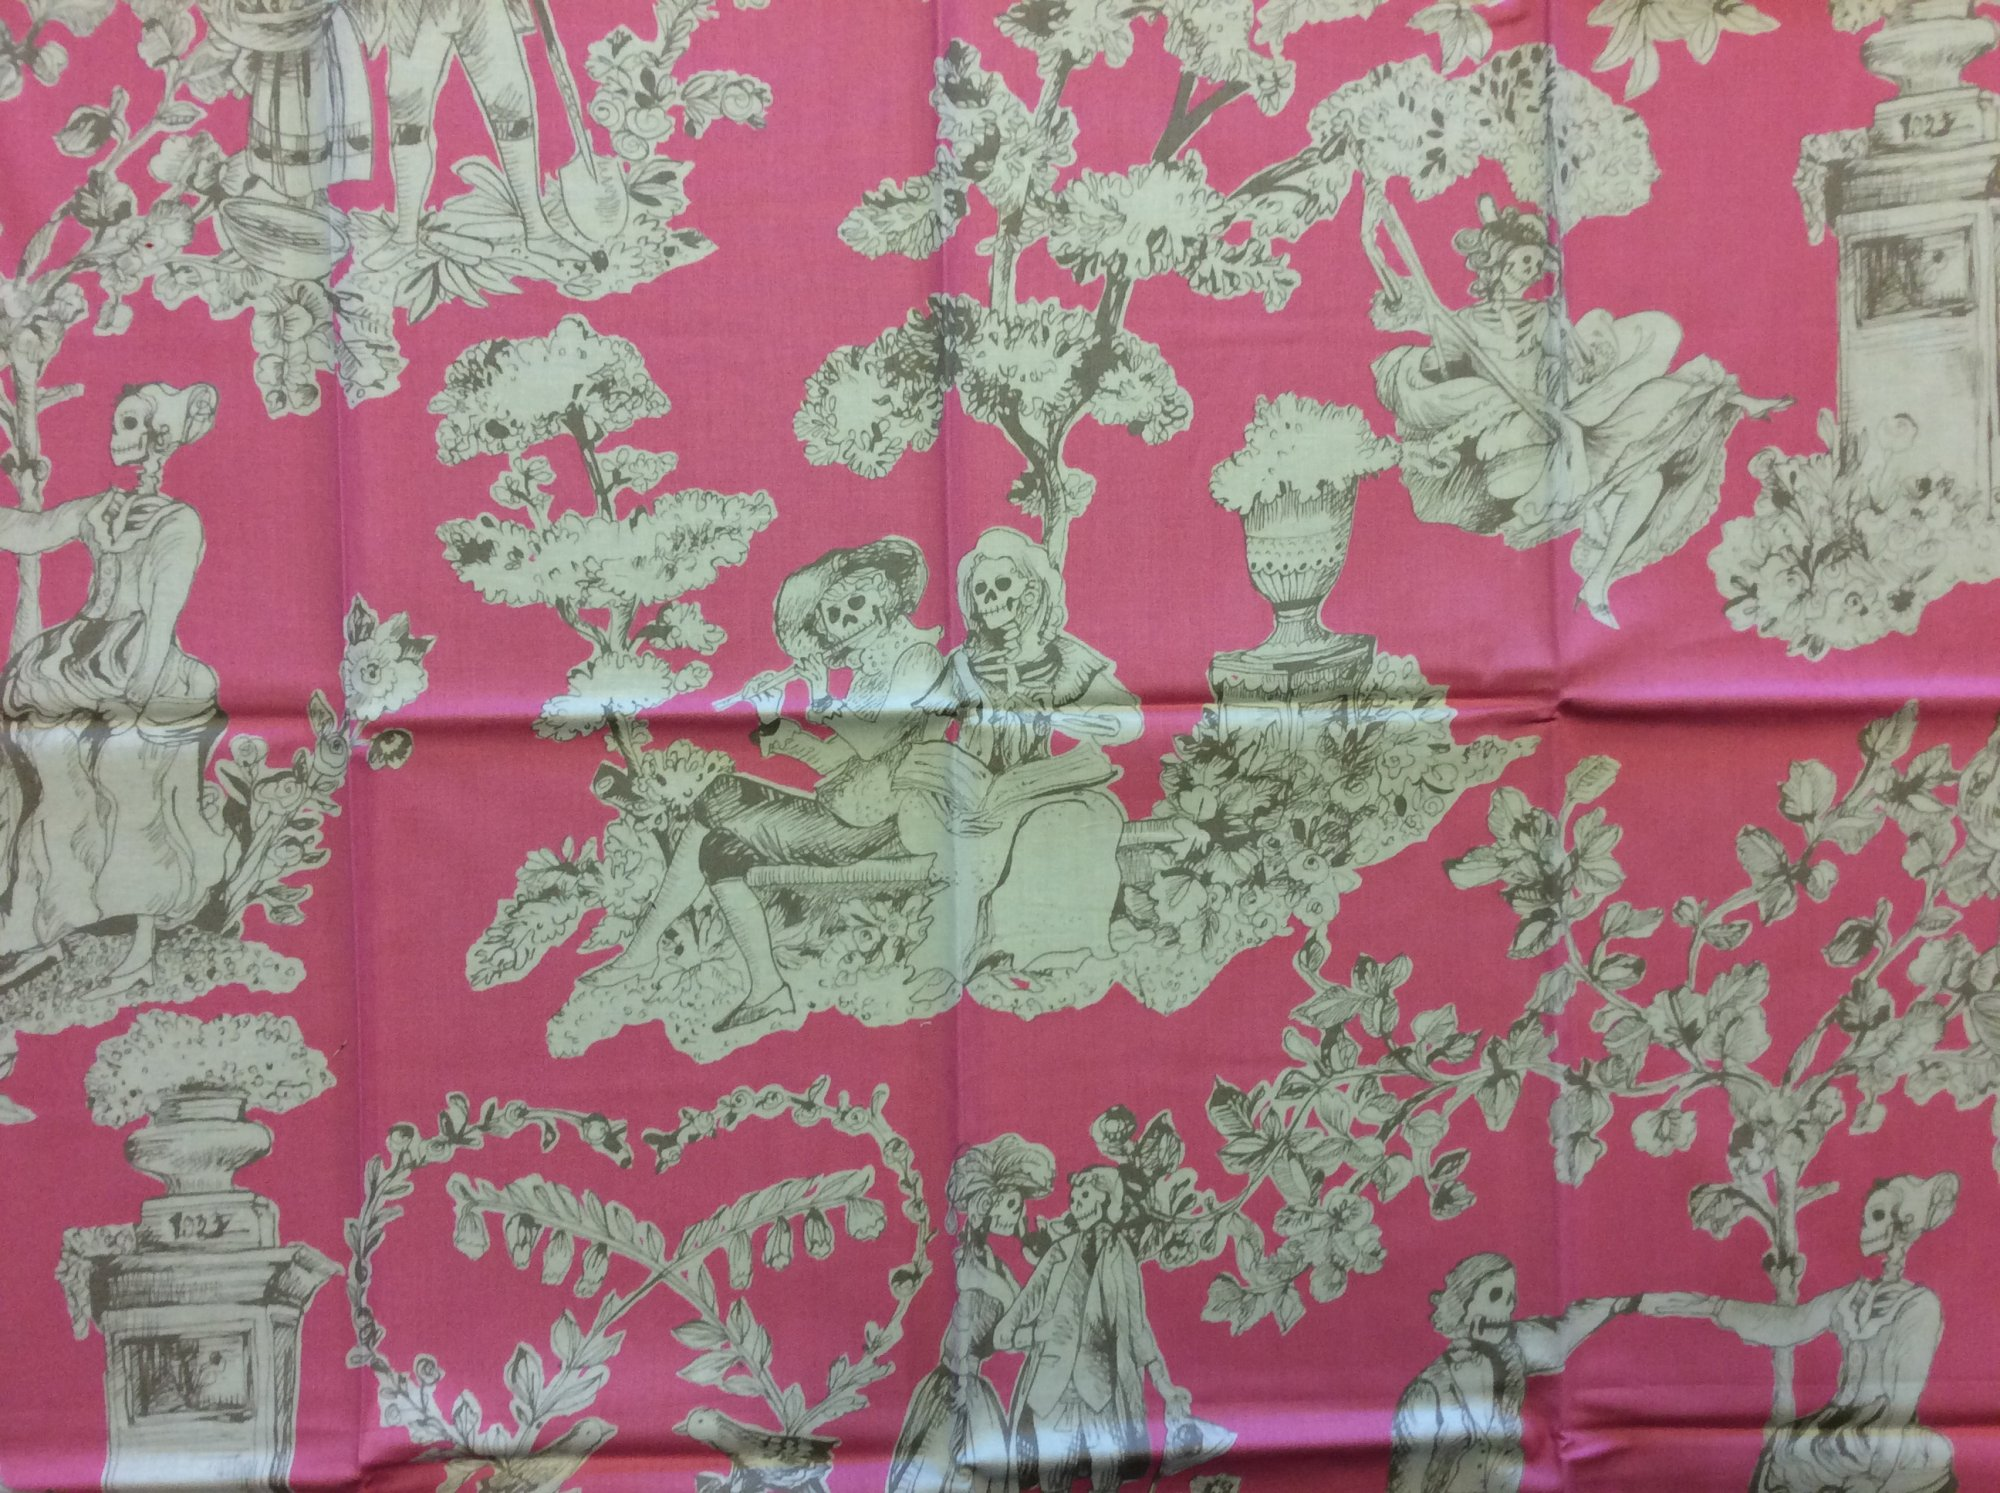 Rare! Out of Print Alexander Henry! Sold by the Piece the romantics Skeleton Toile Pink and Gray Halloween Skull Cotton Quilt Fabric RPAH06